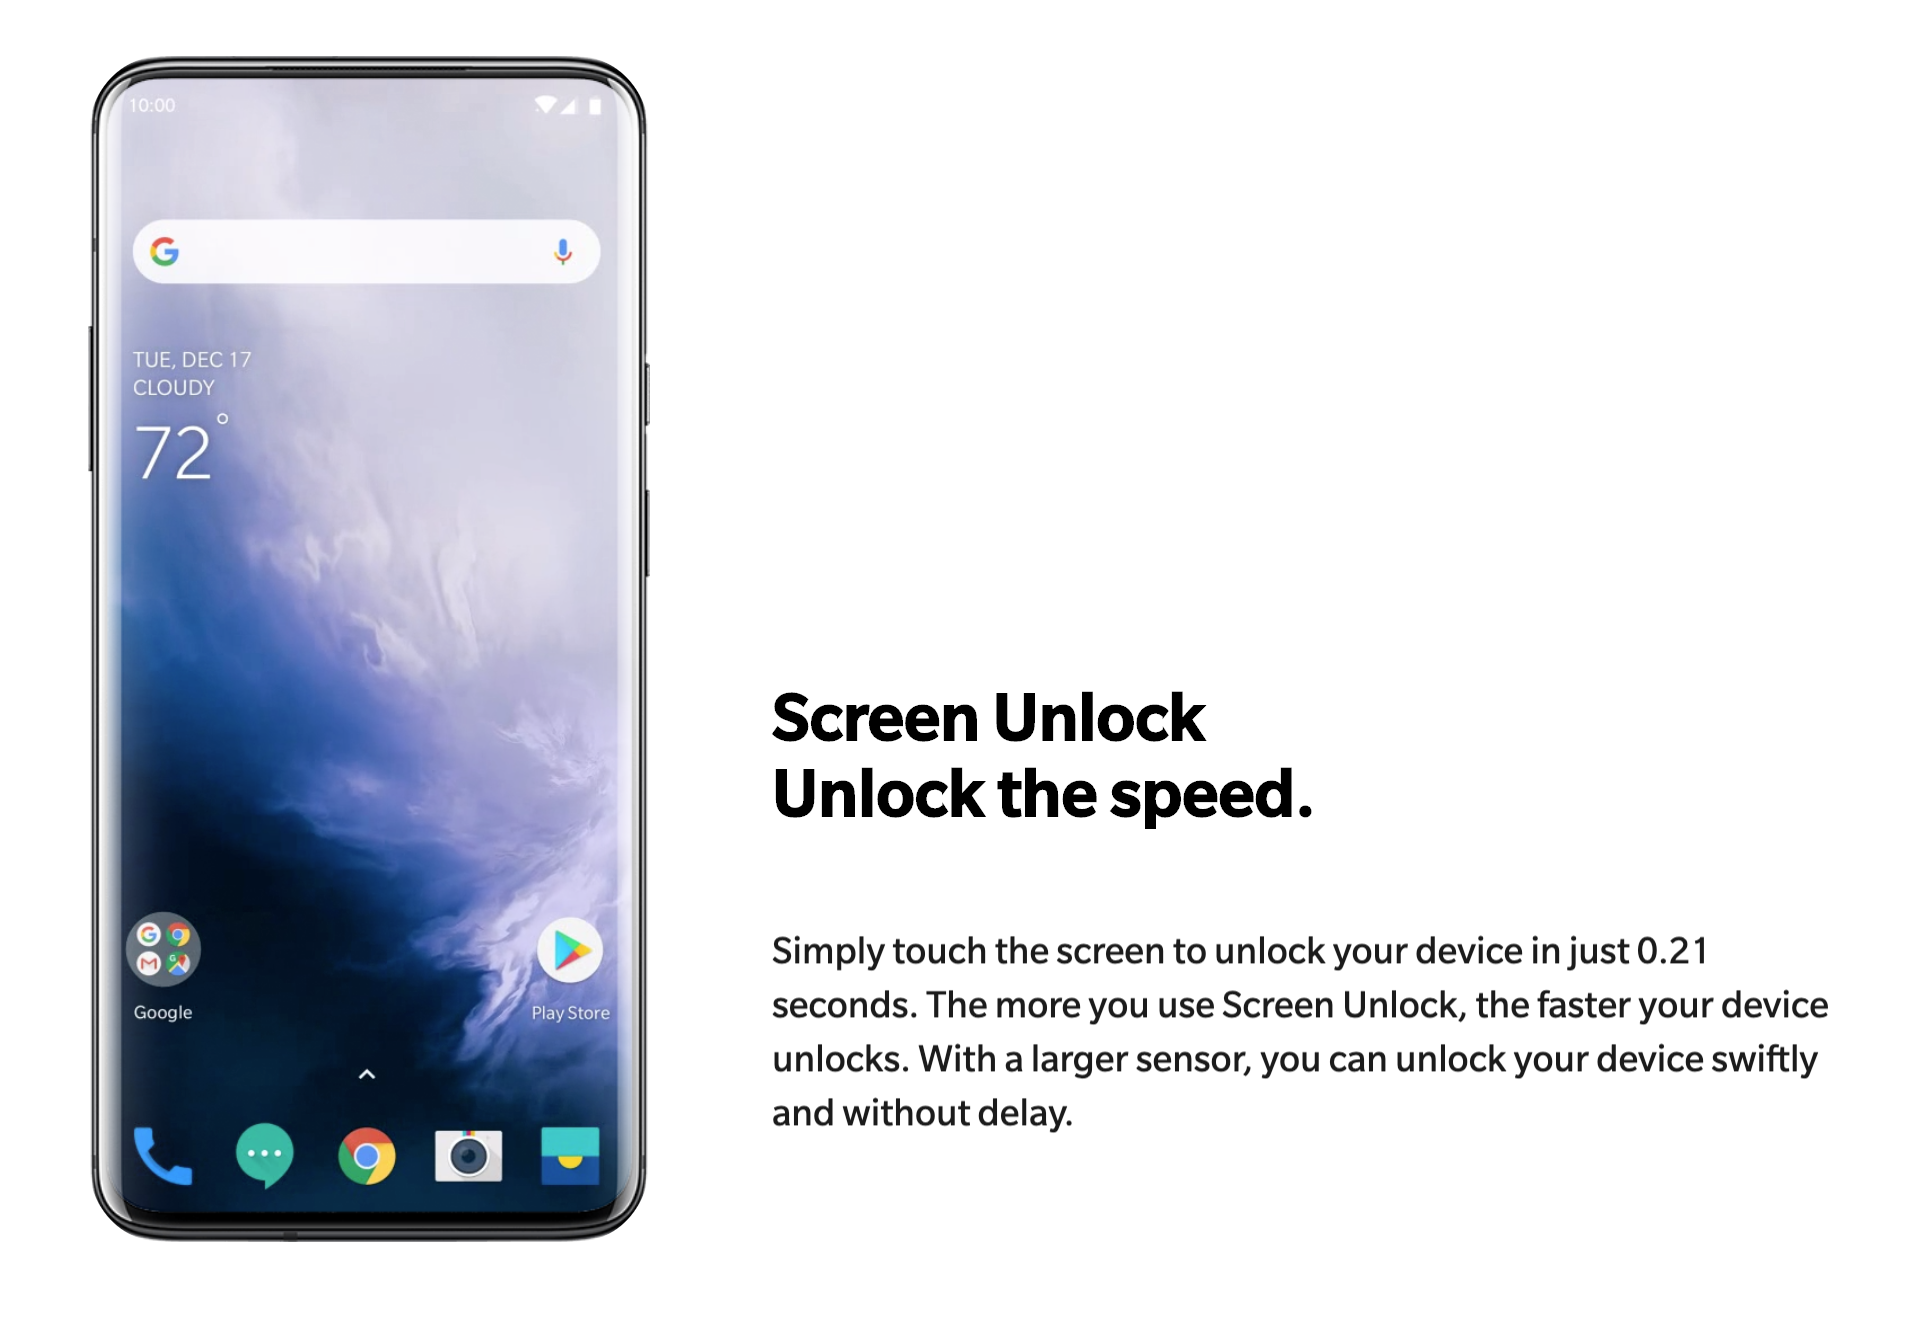 a photo of a OnePlus 7 Pro smartphone